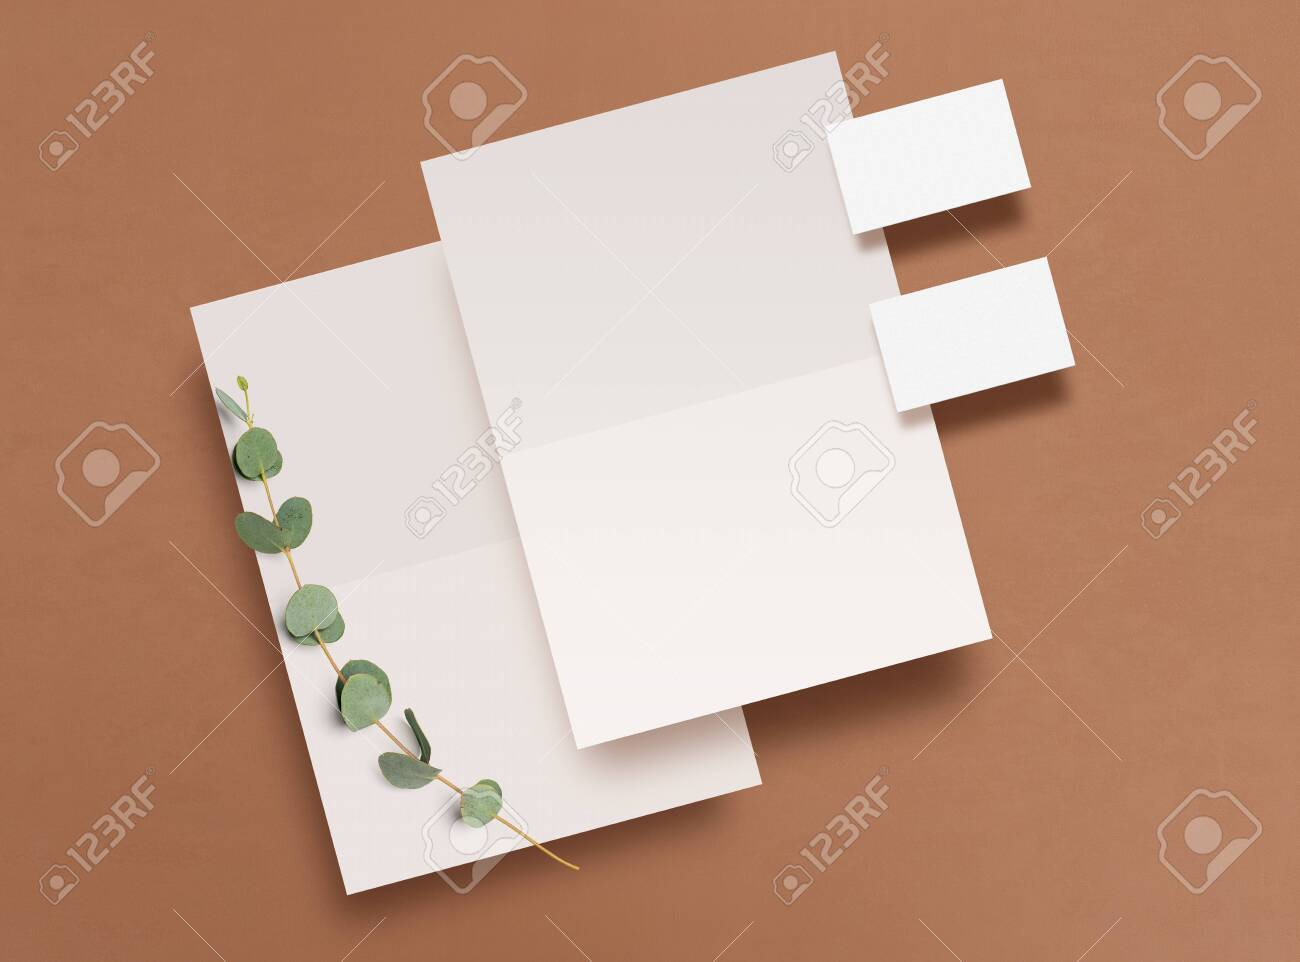 Mockup. Empty blank, business card and a branch of eucalyptus on a brown background. Template for corporate identity. Empty objects to place your design. Flat lay. Top view. 3D illustration. - 149198566